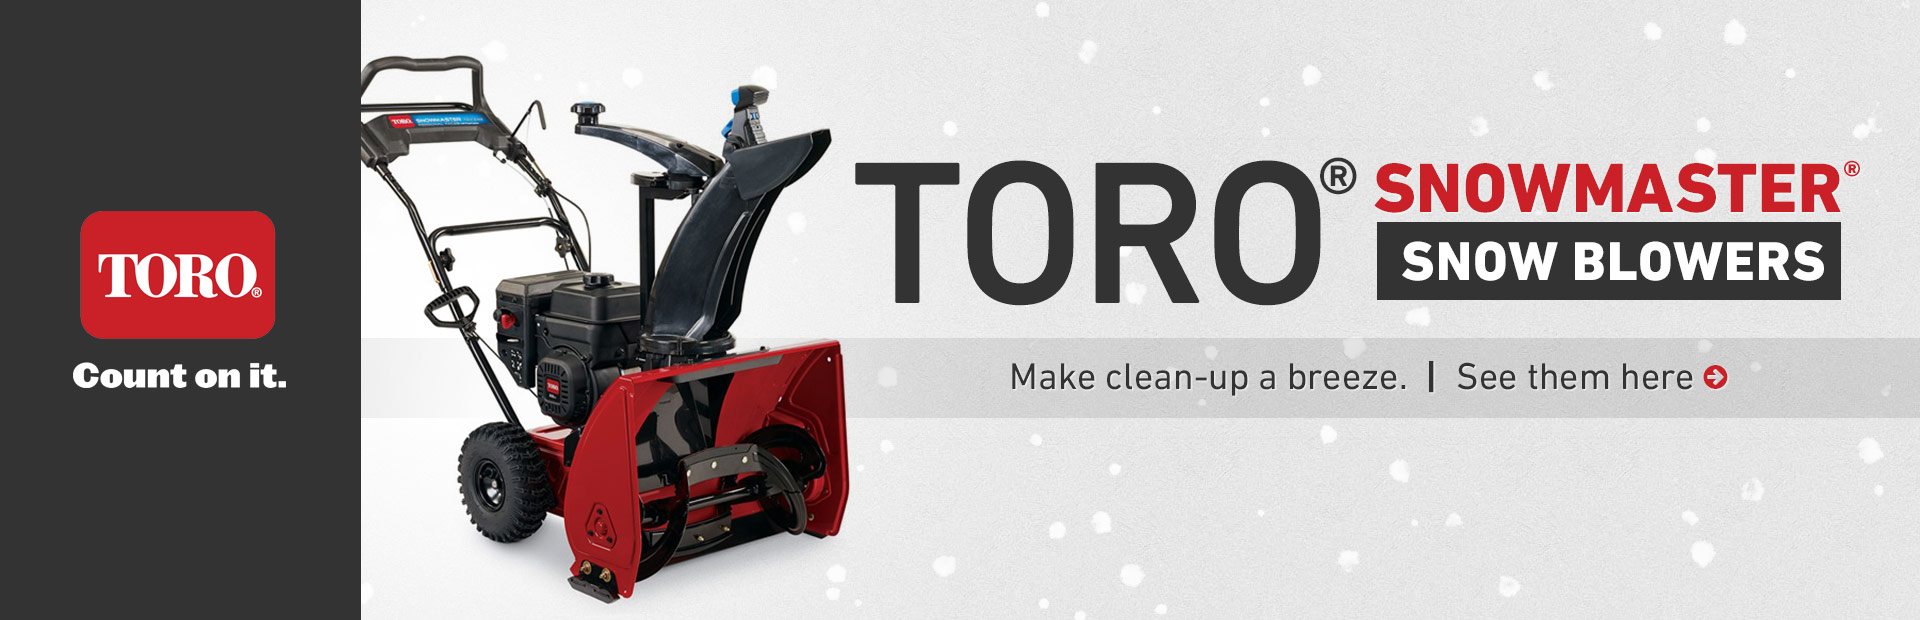 Toro Snowmaster Snow Ers Click Here To View The Models